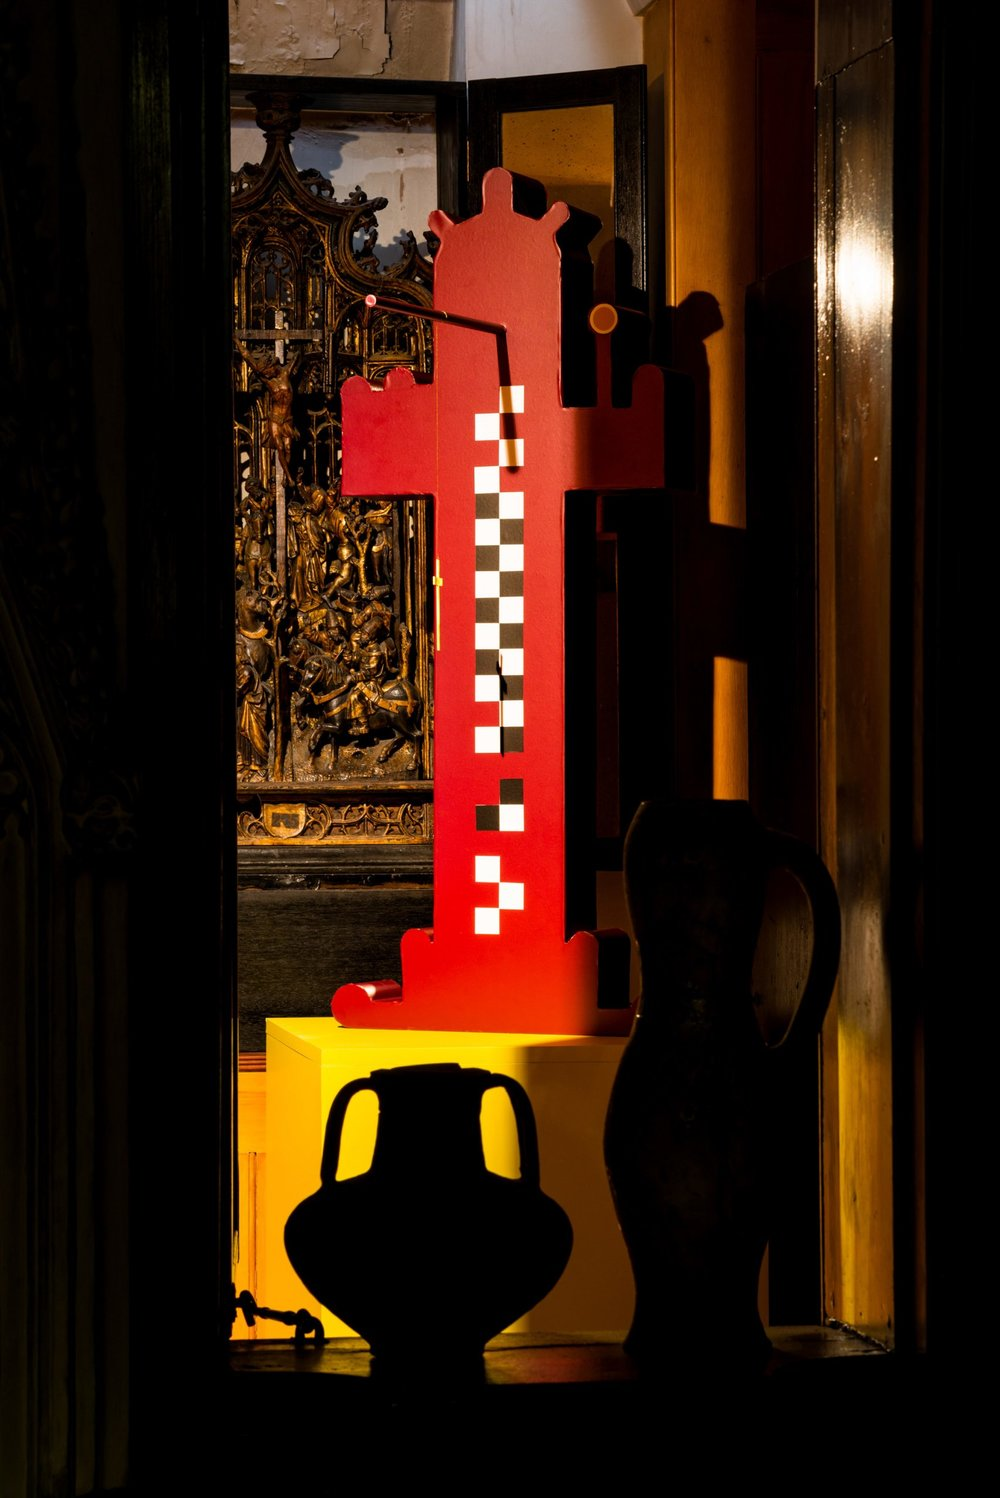 john-soane-architectural-characters-installation-london-uk_dezeen_2364_col_12-1704x2553.jpg